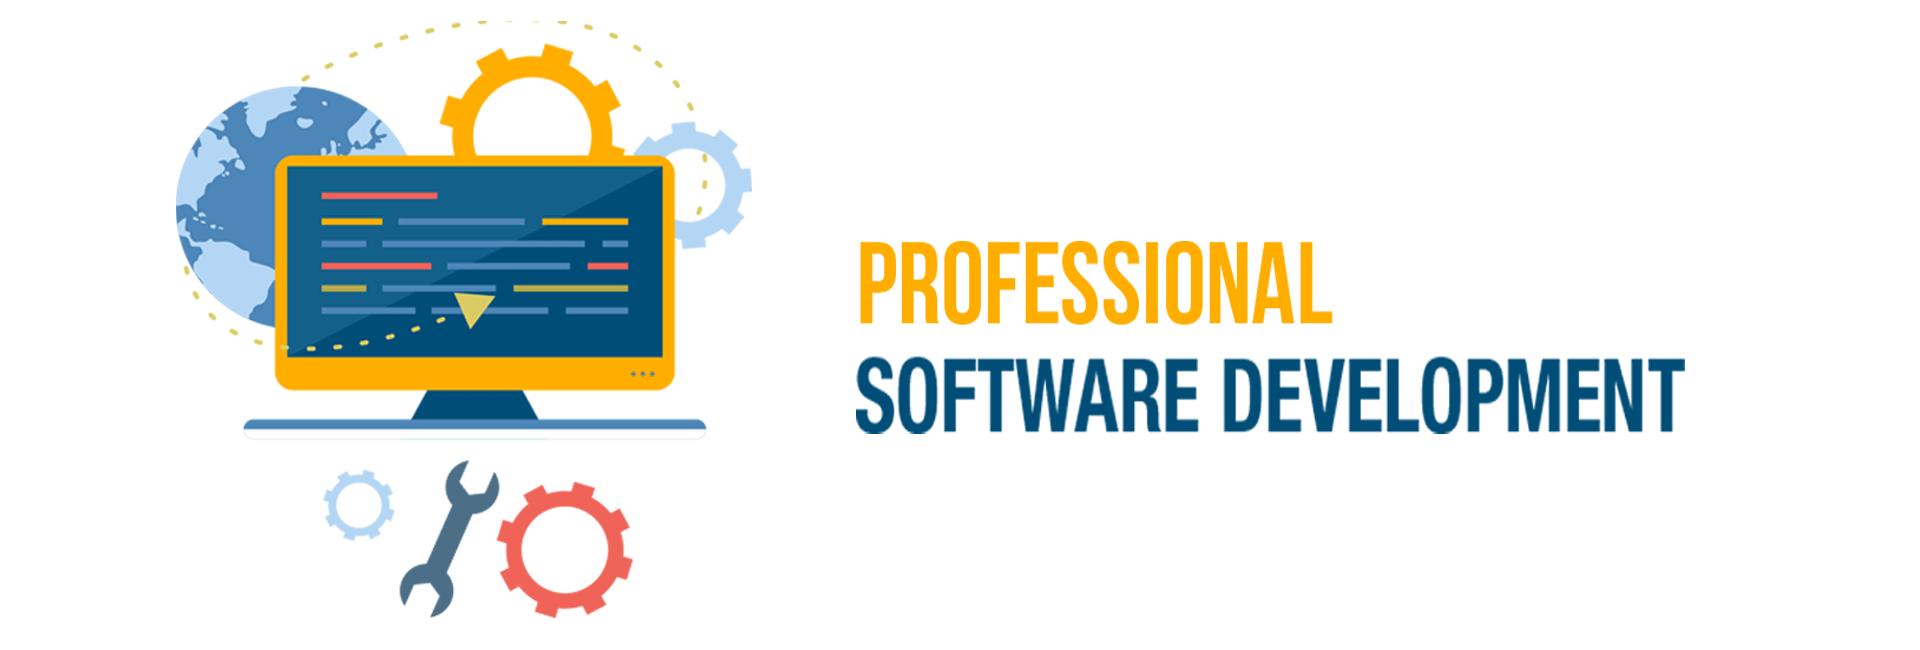 software-development-banner